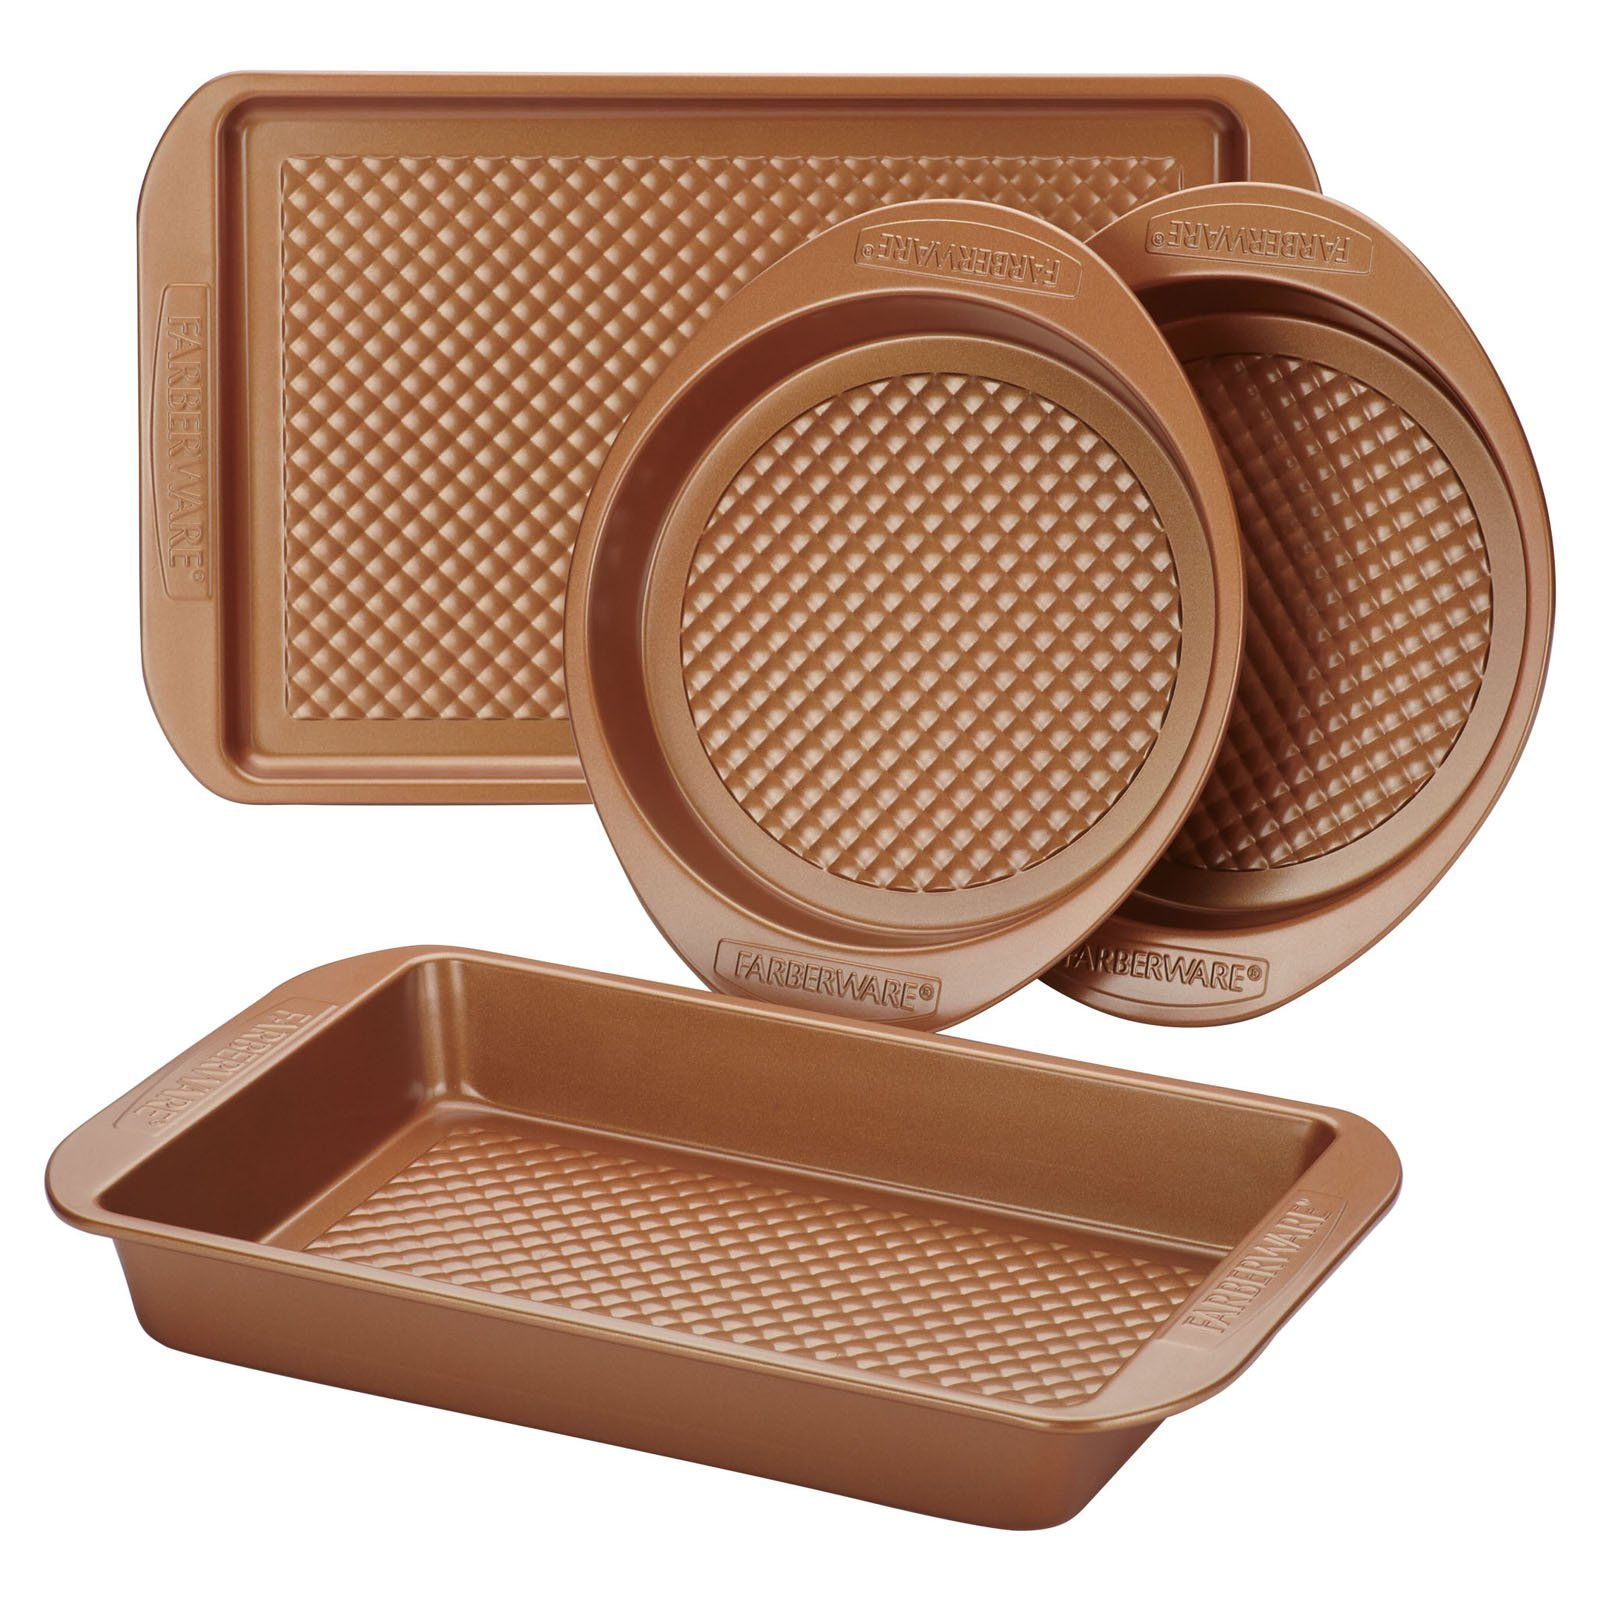 Meyerco Colorvive Nonstick Steel 4 Piece Bakeware Set Nonstick